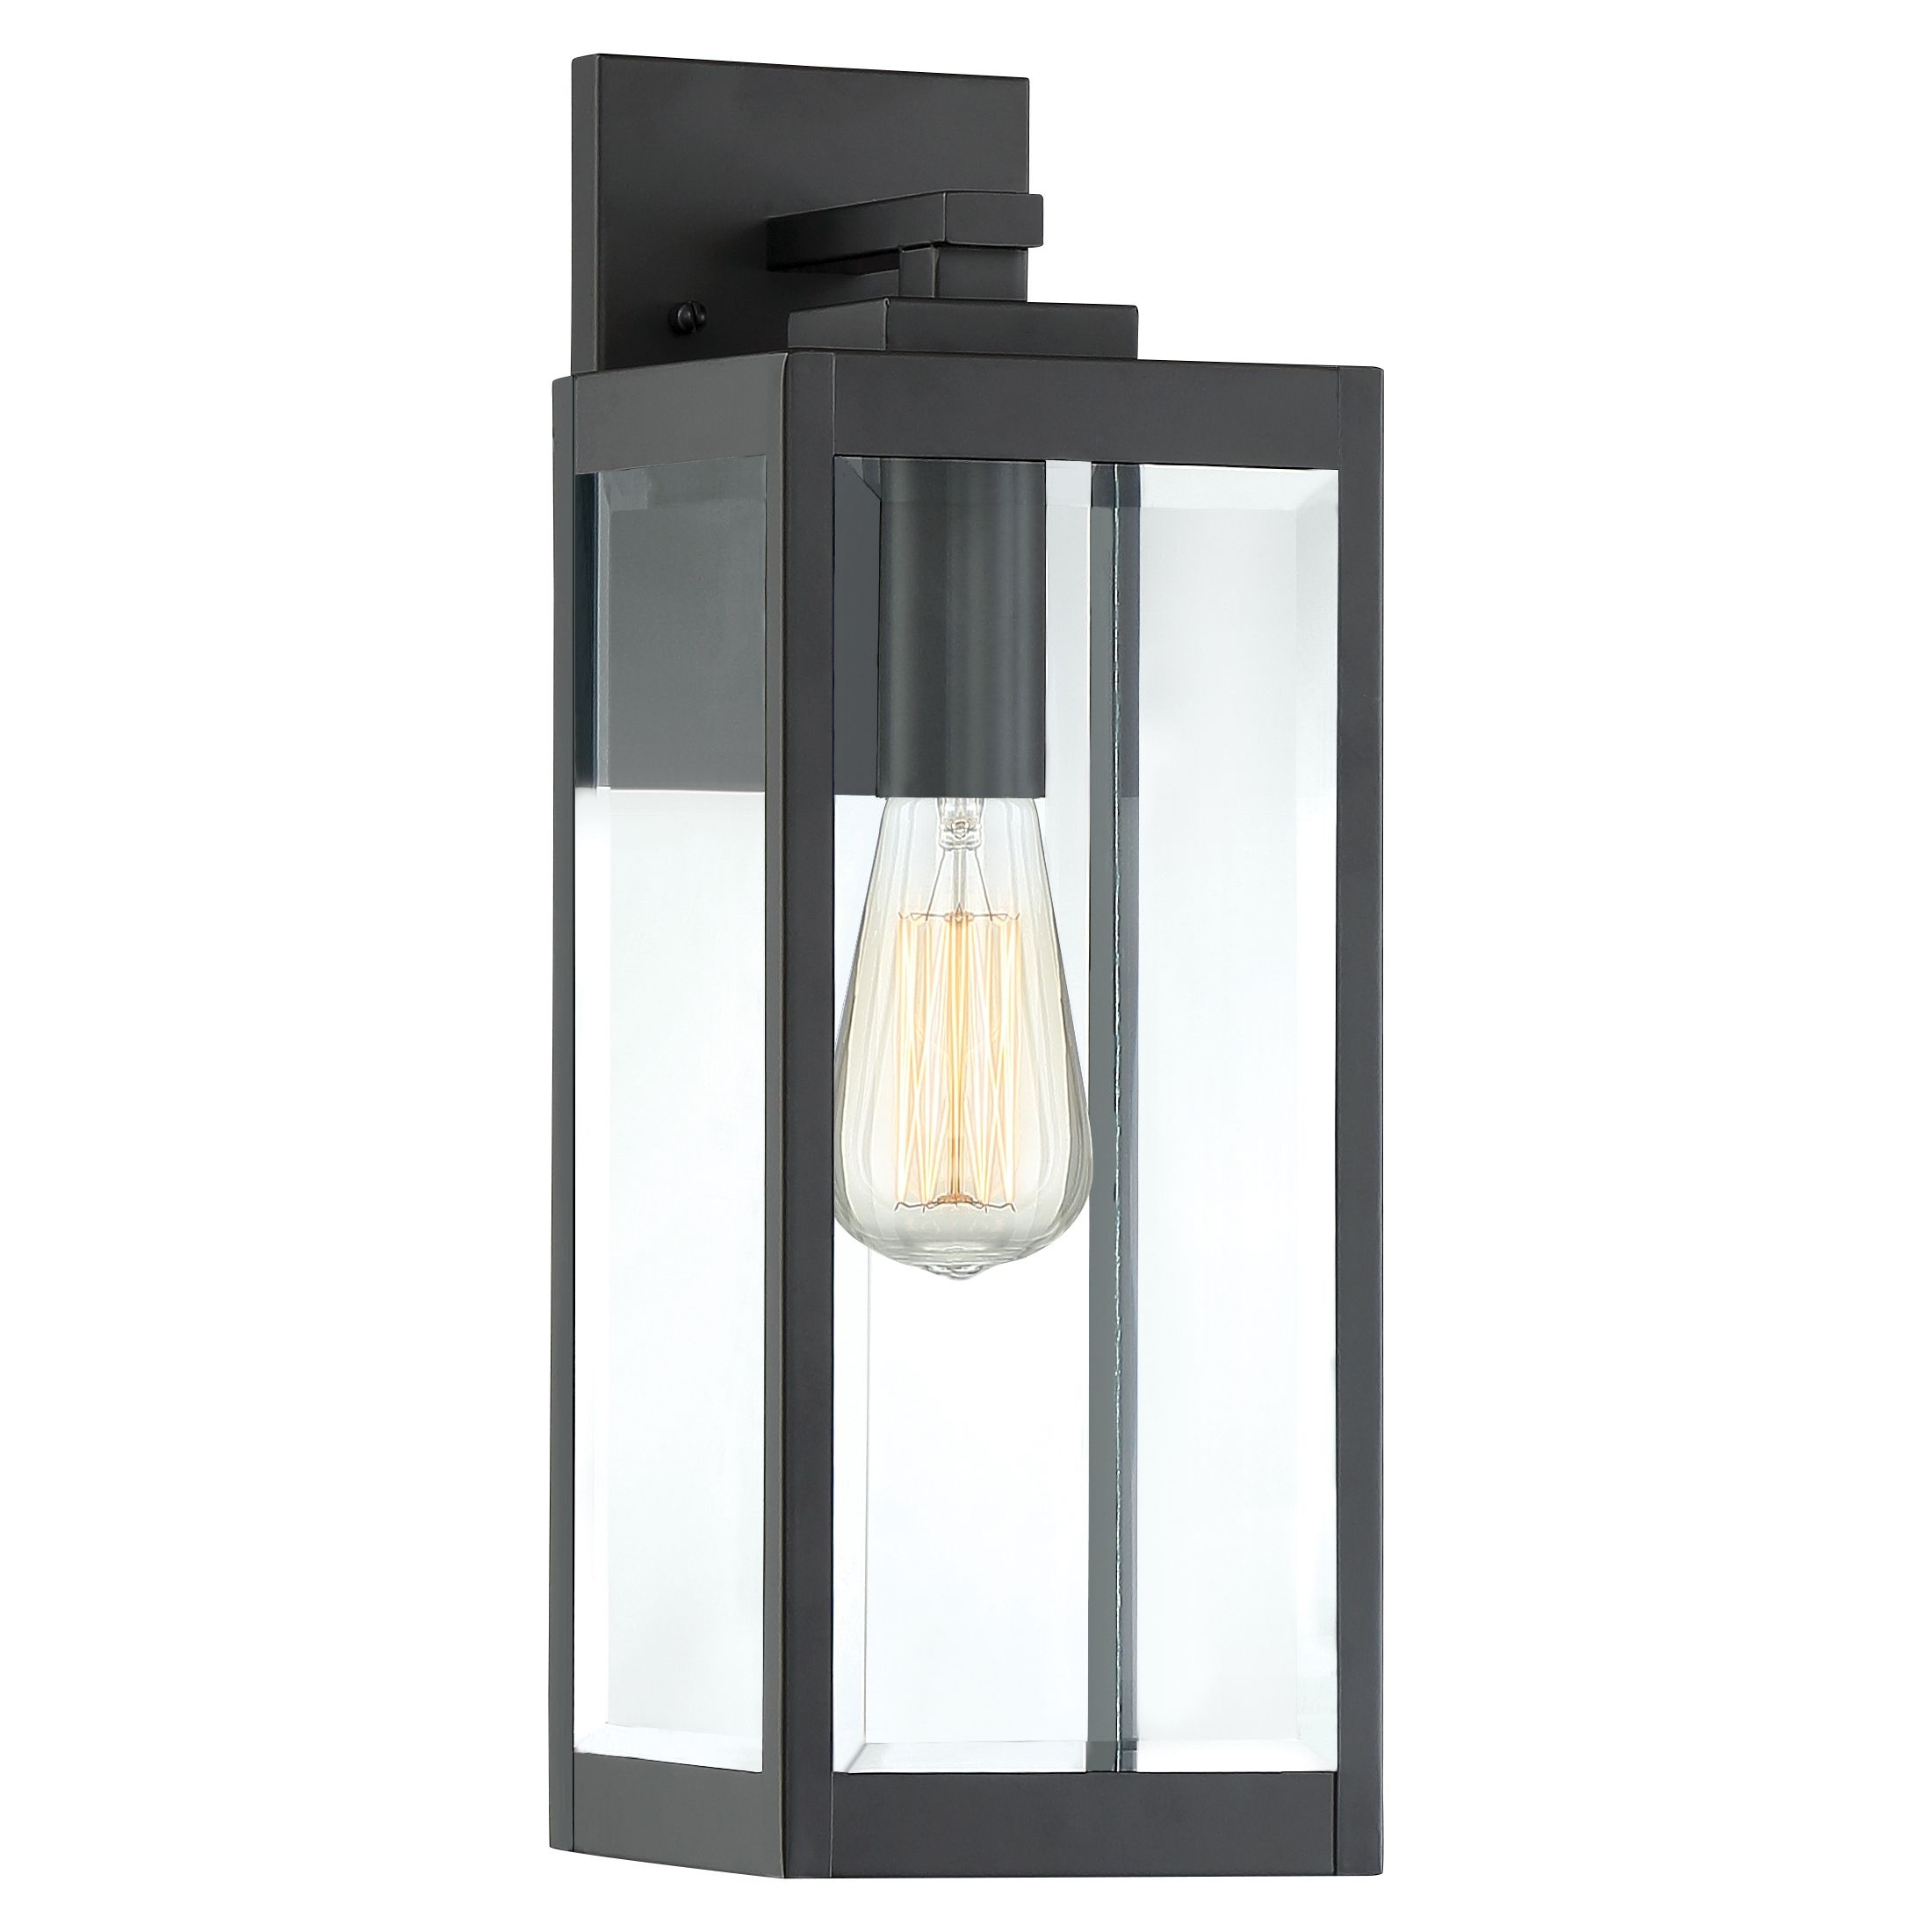 Westover Outdoor Lantern | Quoizel Pertaining To Quoizel Outdoor Lanterns (Photo 4 of 20)